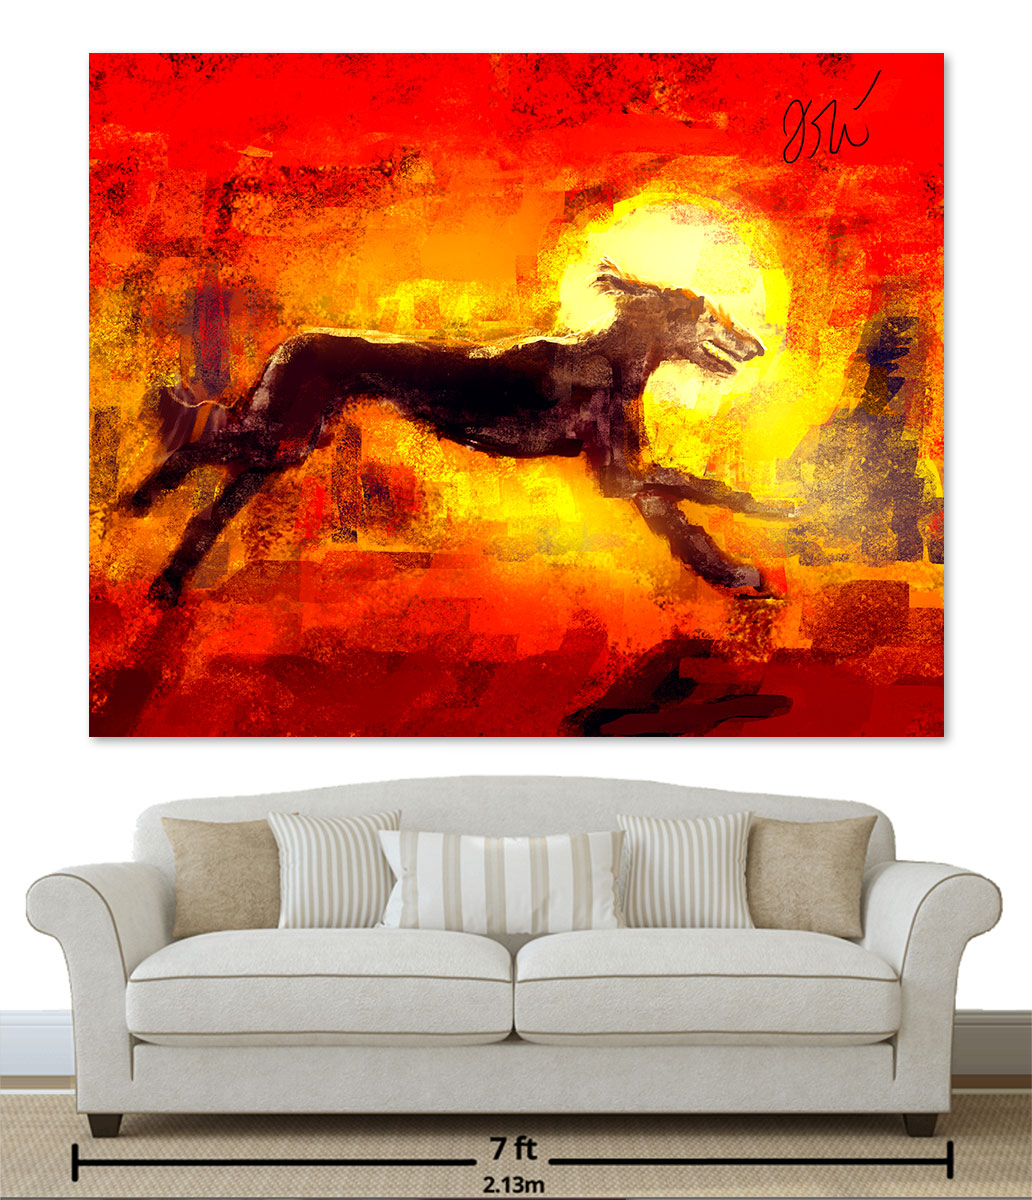 """60""""48"""" Canvas over a 7 foot couch"""